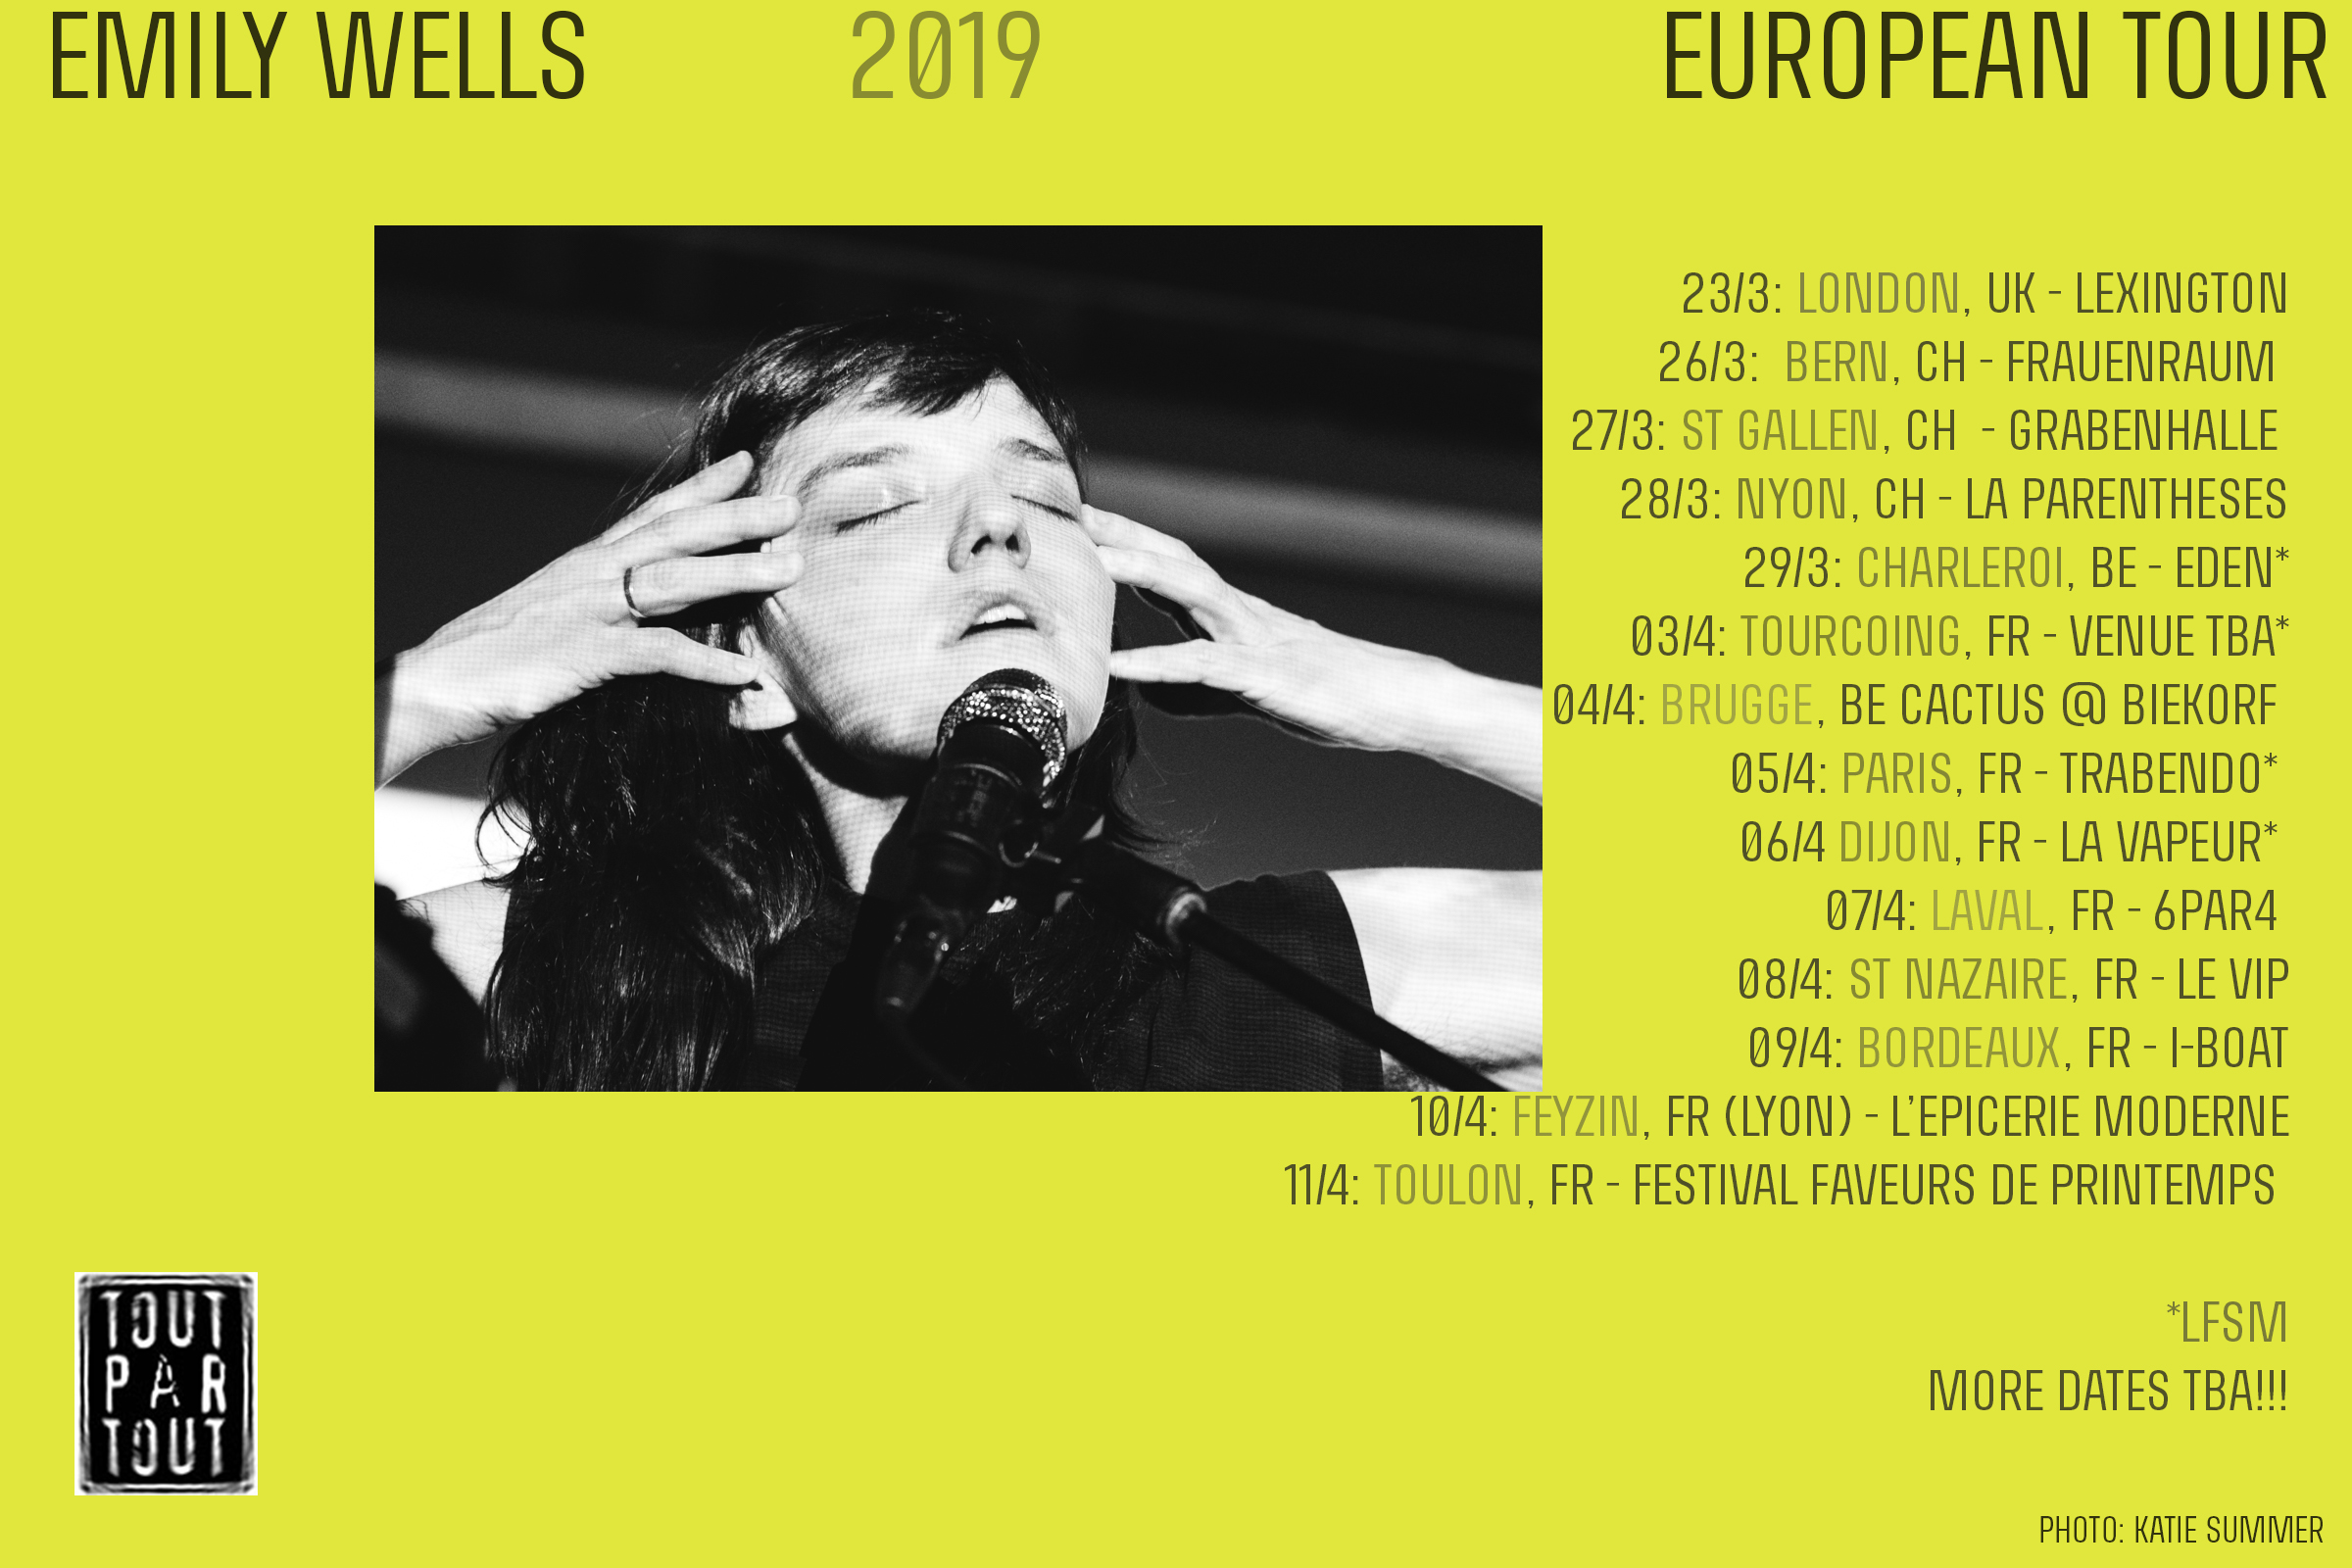 emily wells tour poster euro 2019 w venues.jpg